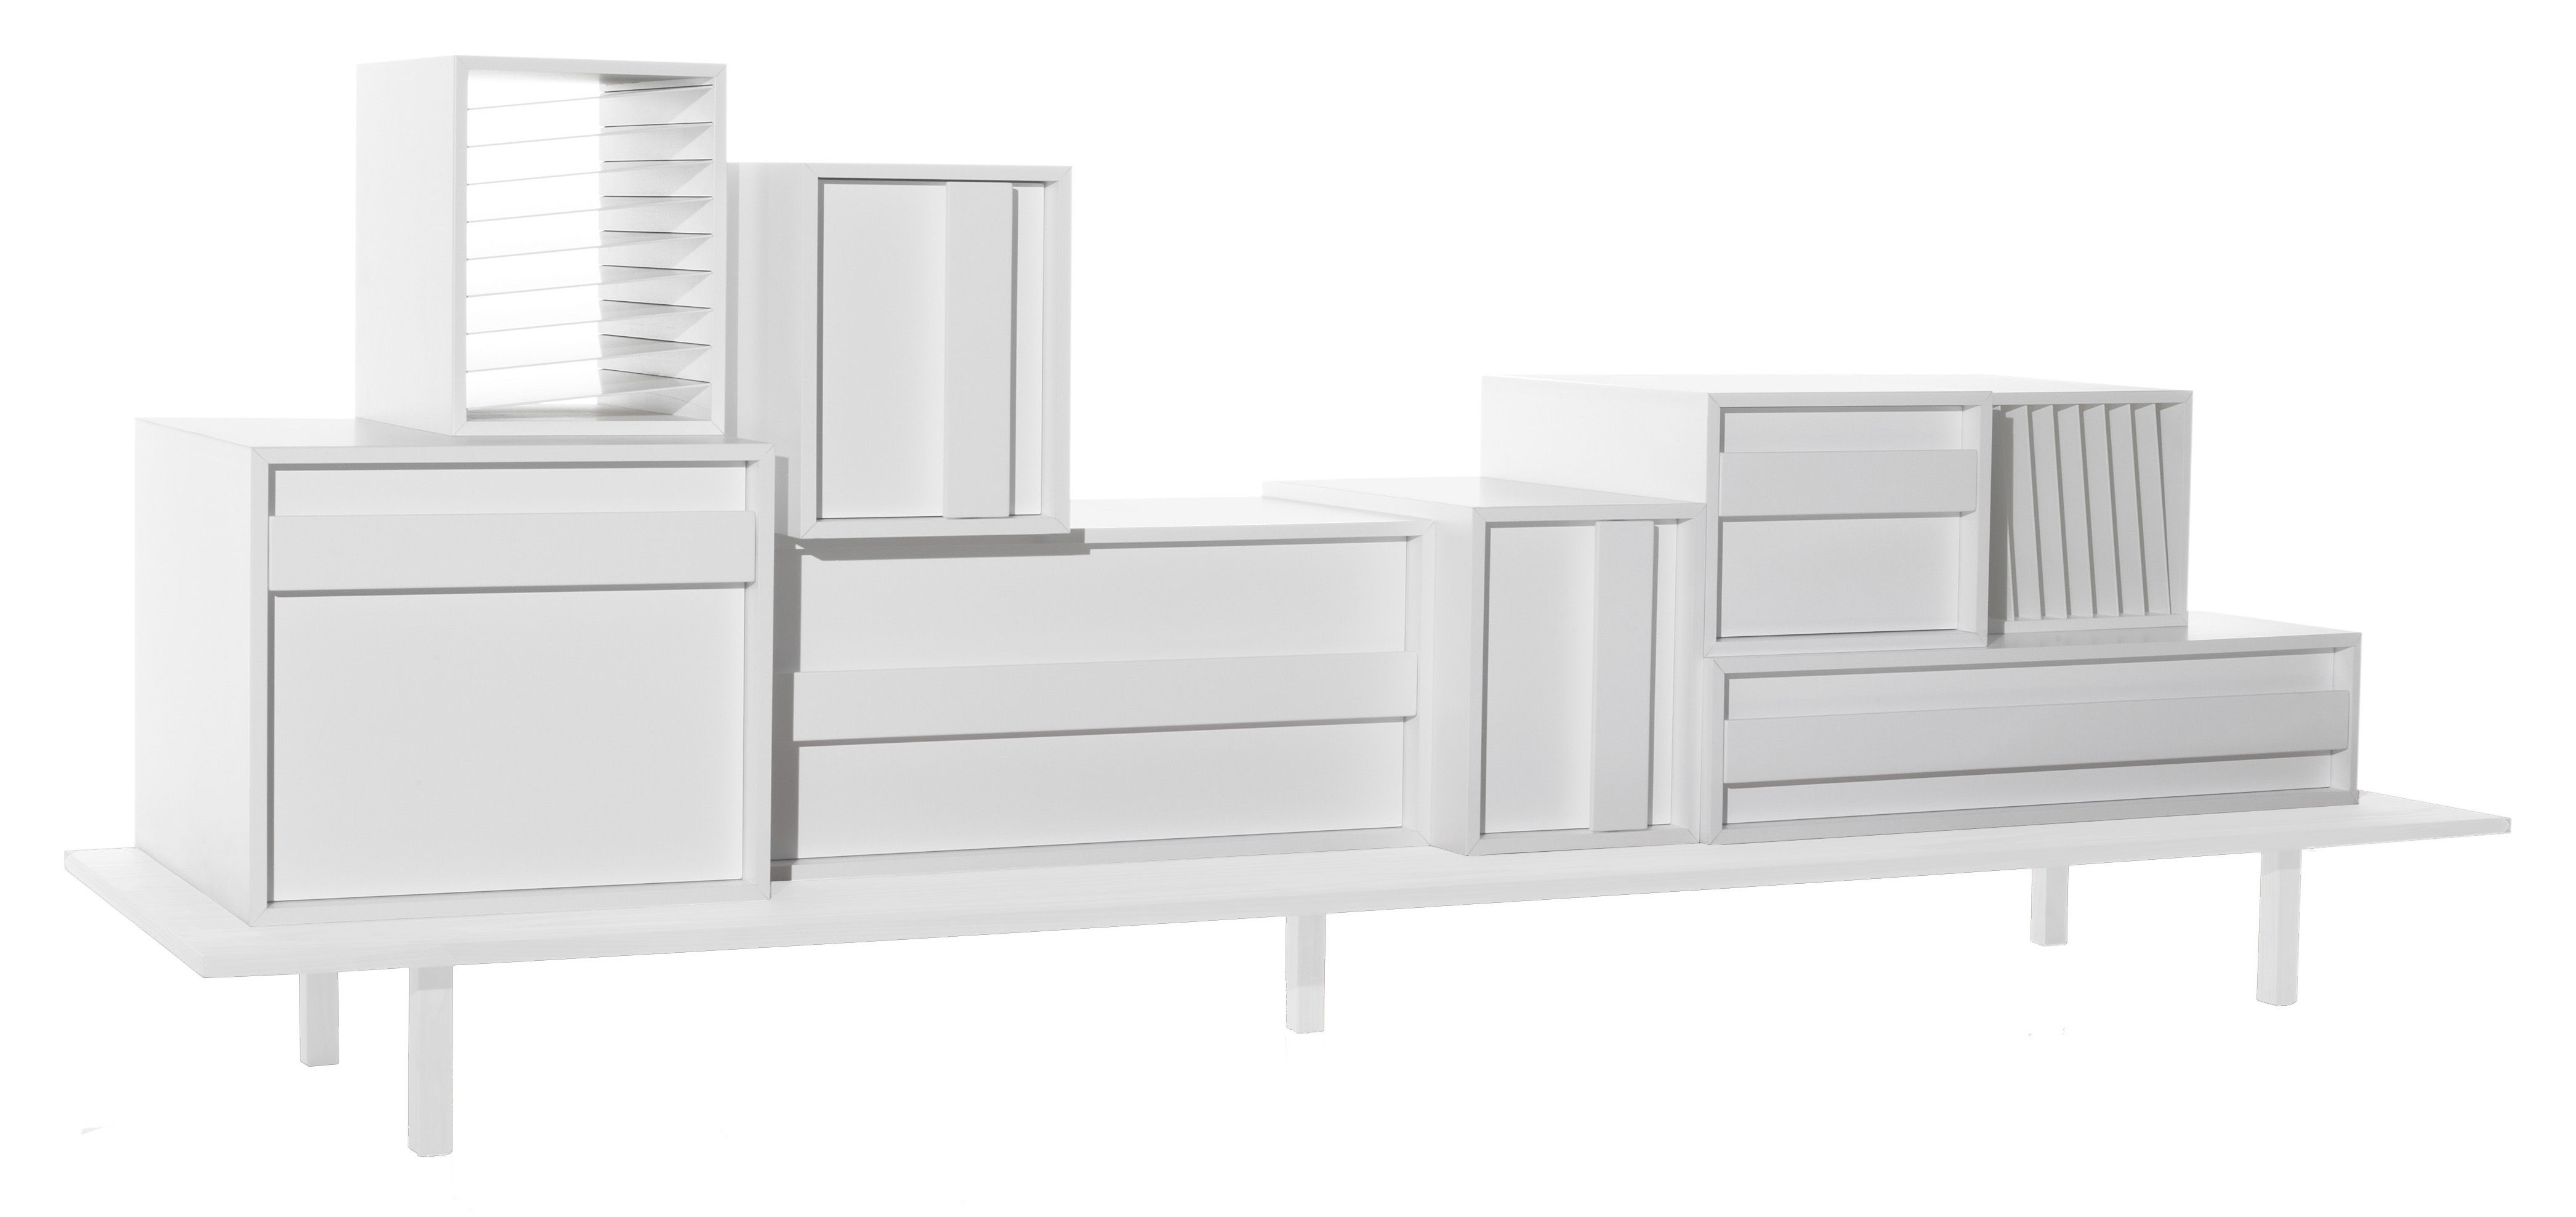 meuble de rangement container l 229 x h 89 cm mdf blanc casamania made in design. Black Bedroom Furniture Sets. Home Design Ideas